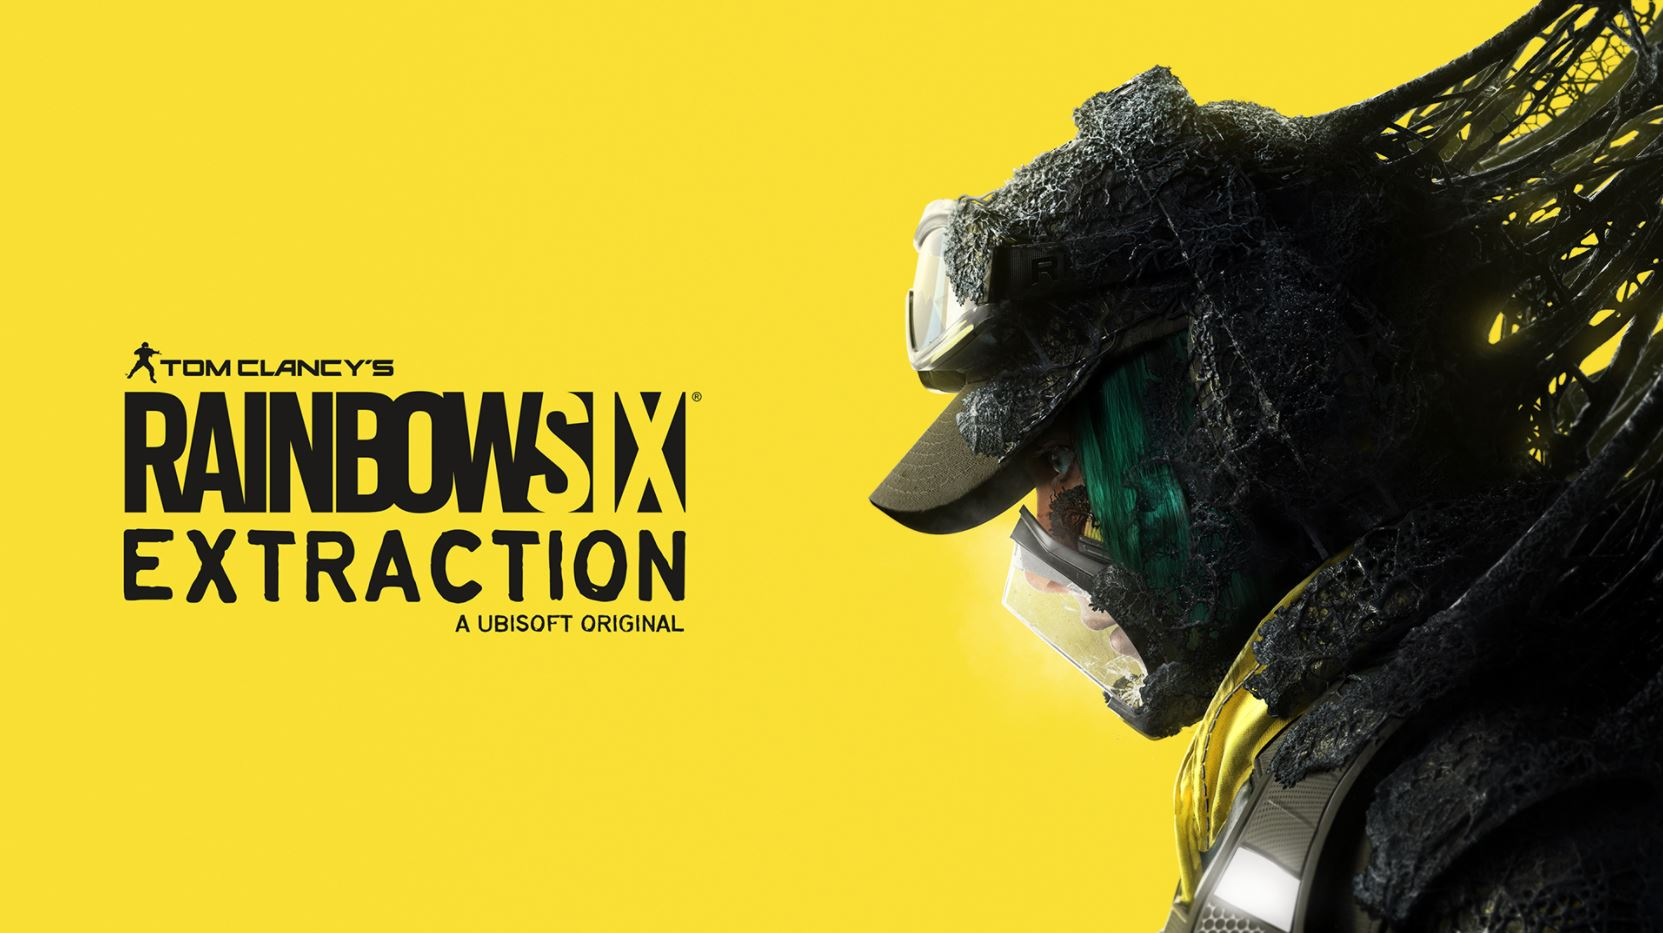 rainbow-six-extraction-ps5-ps4-news-reviews-videos-1